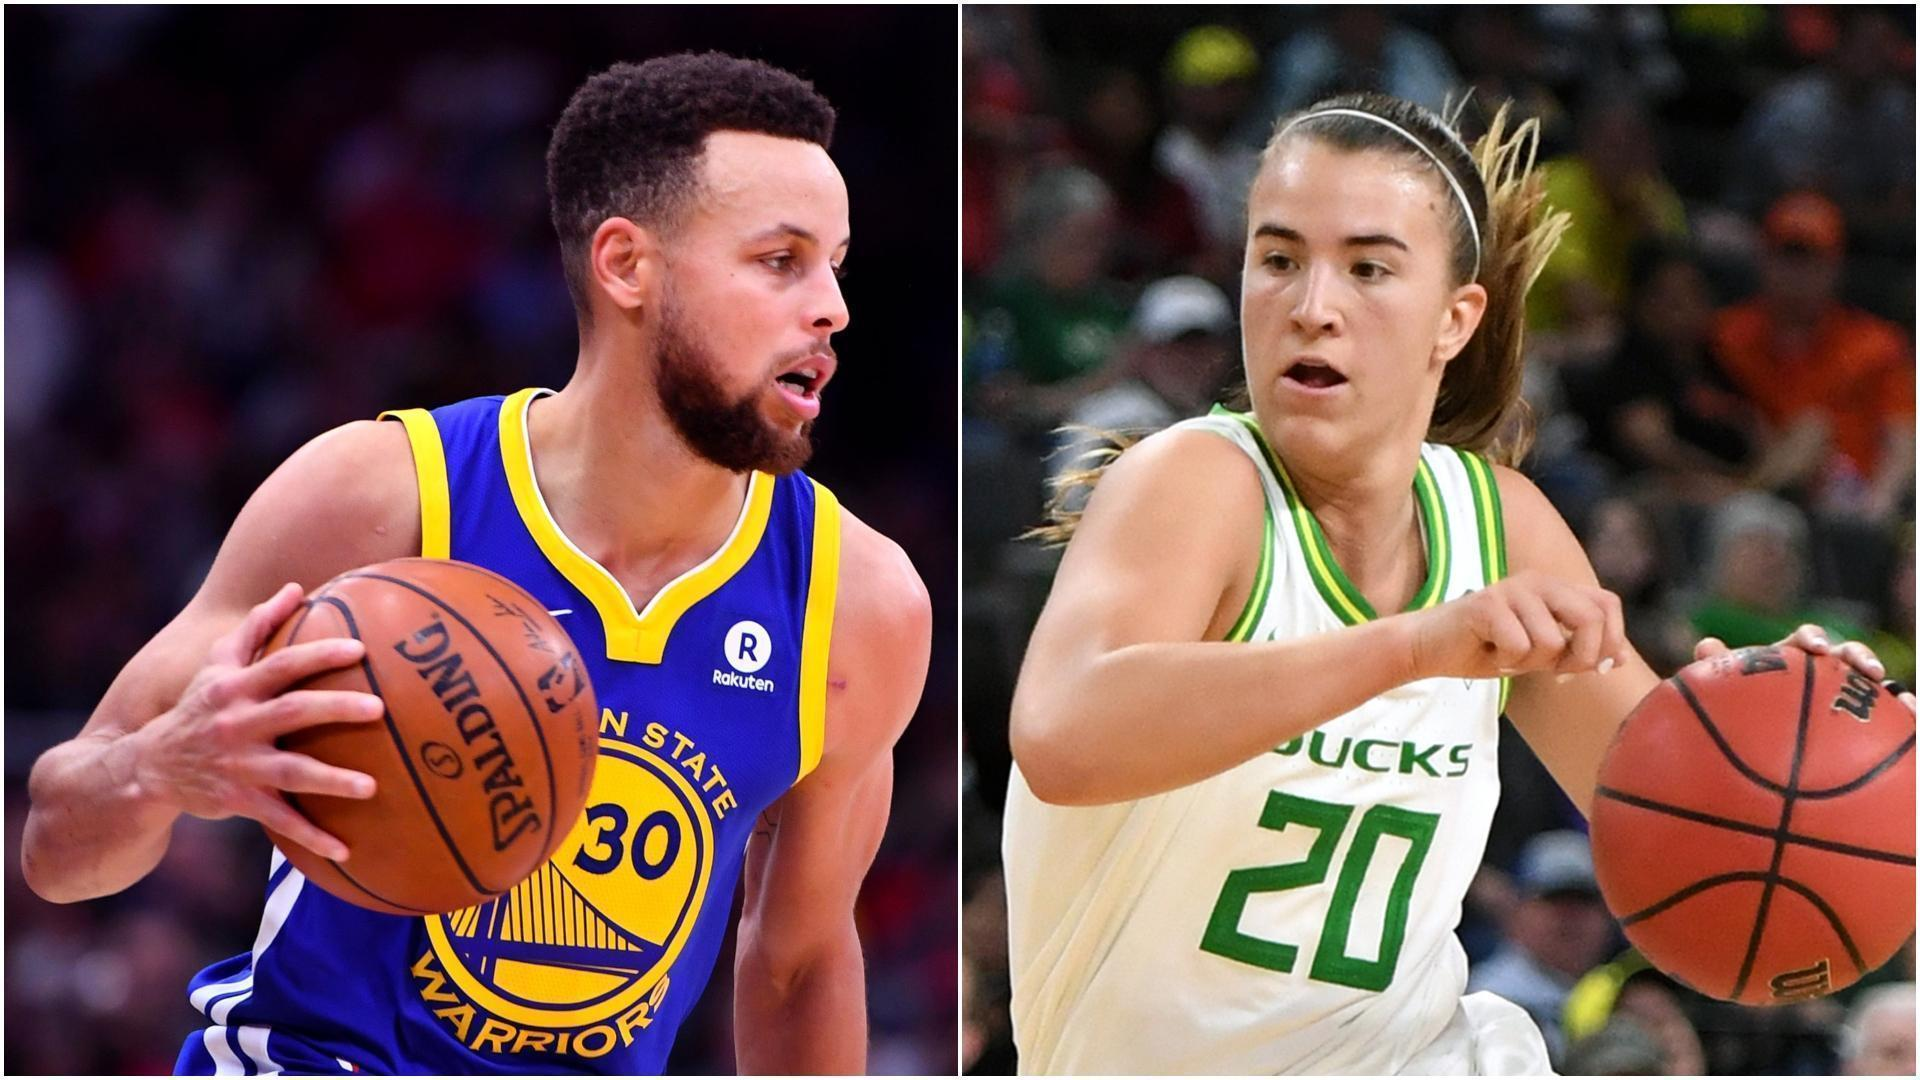 Comparing Steph's and Sabrina's greatness